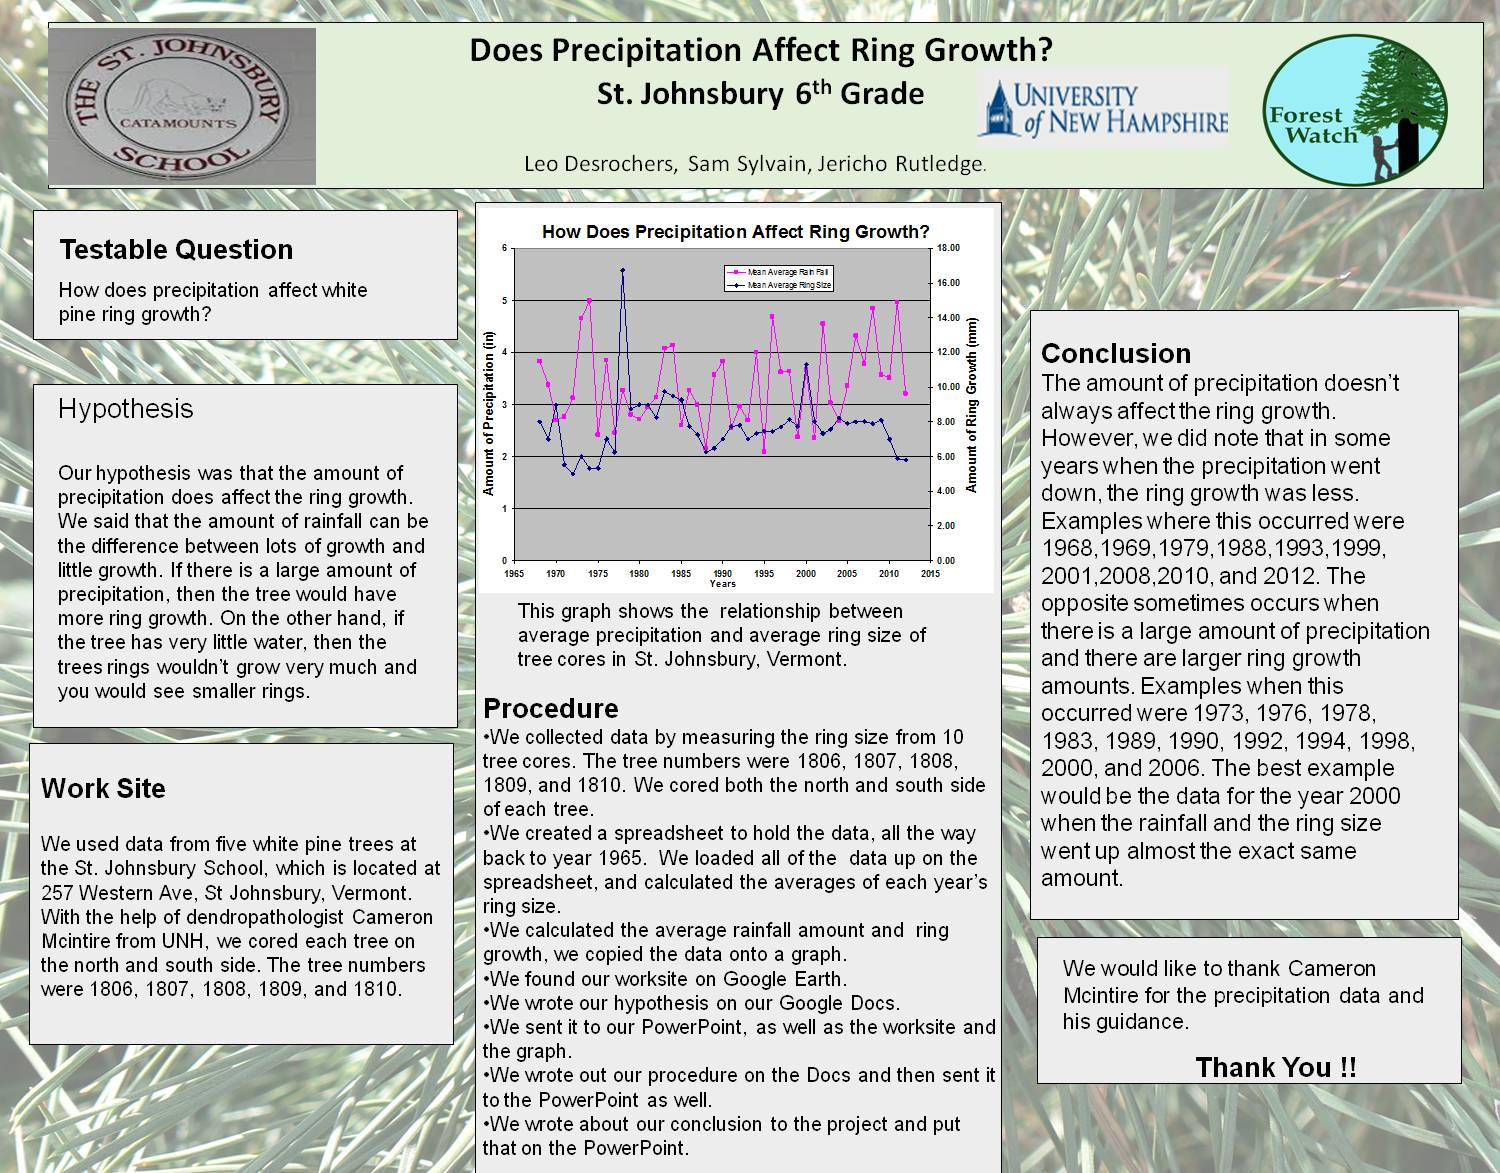 Does Precipitation Affect Ring Growth by obwurzburg